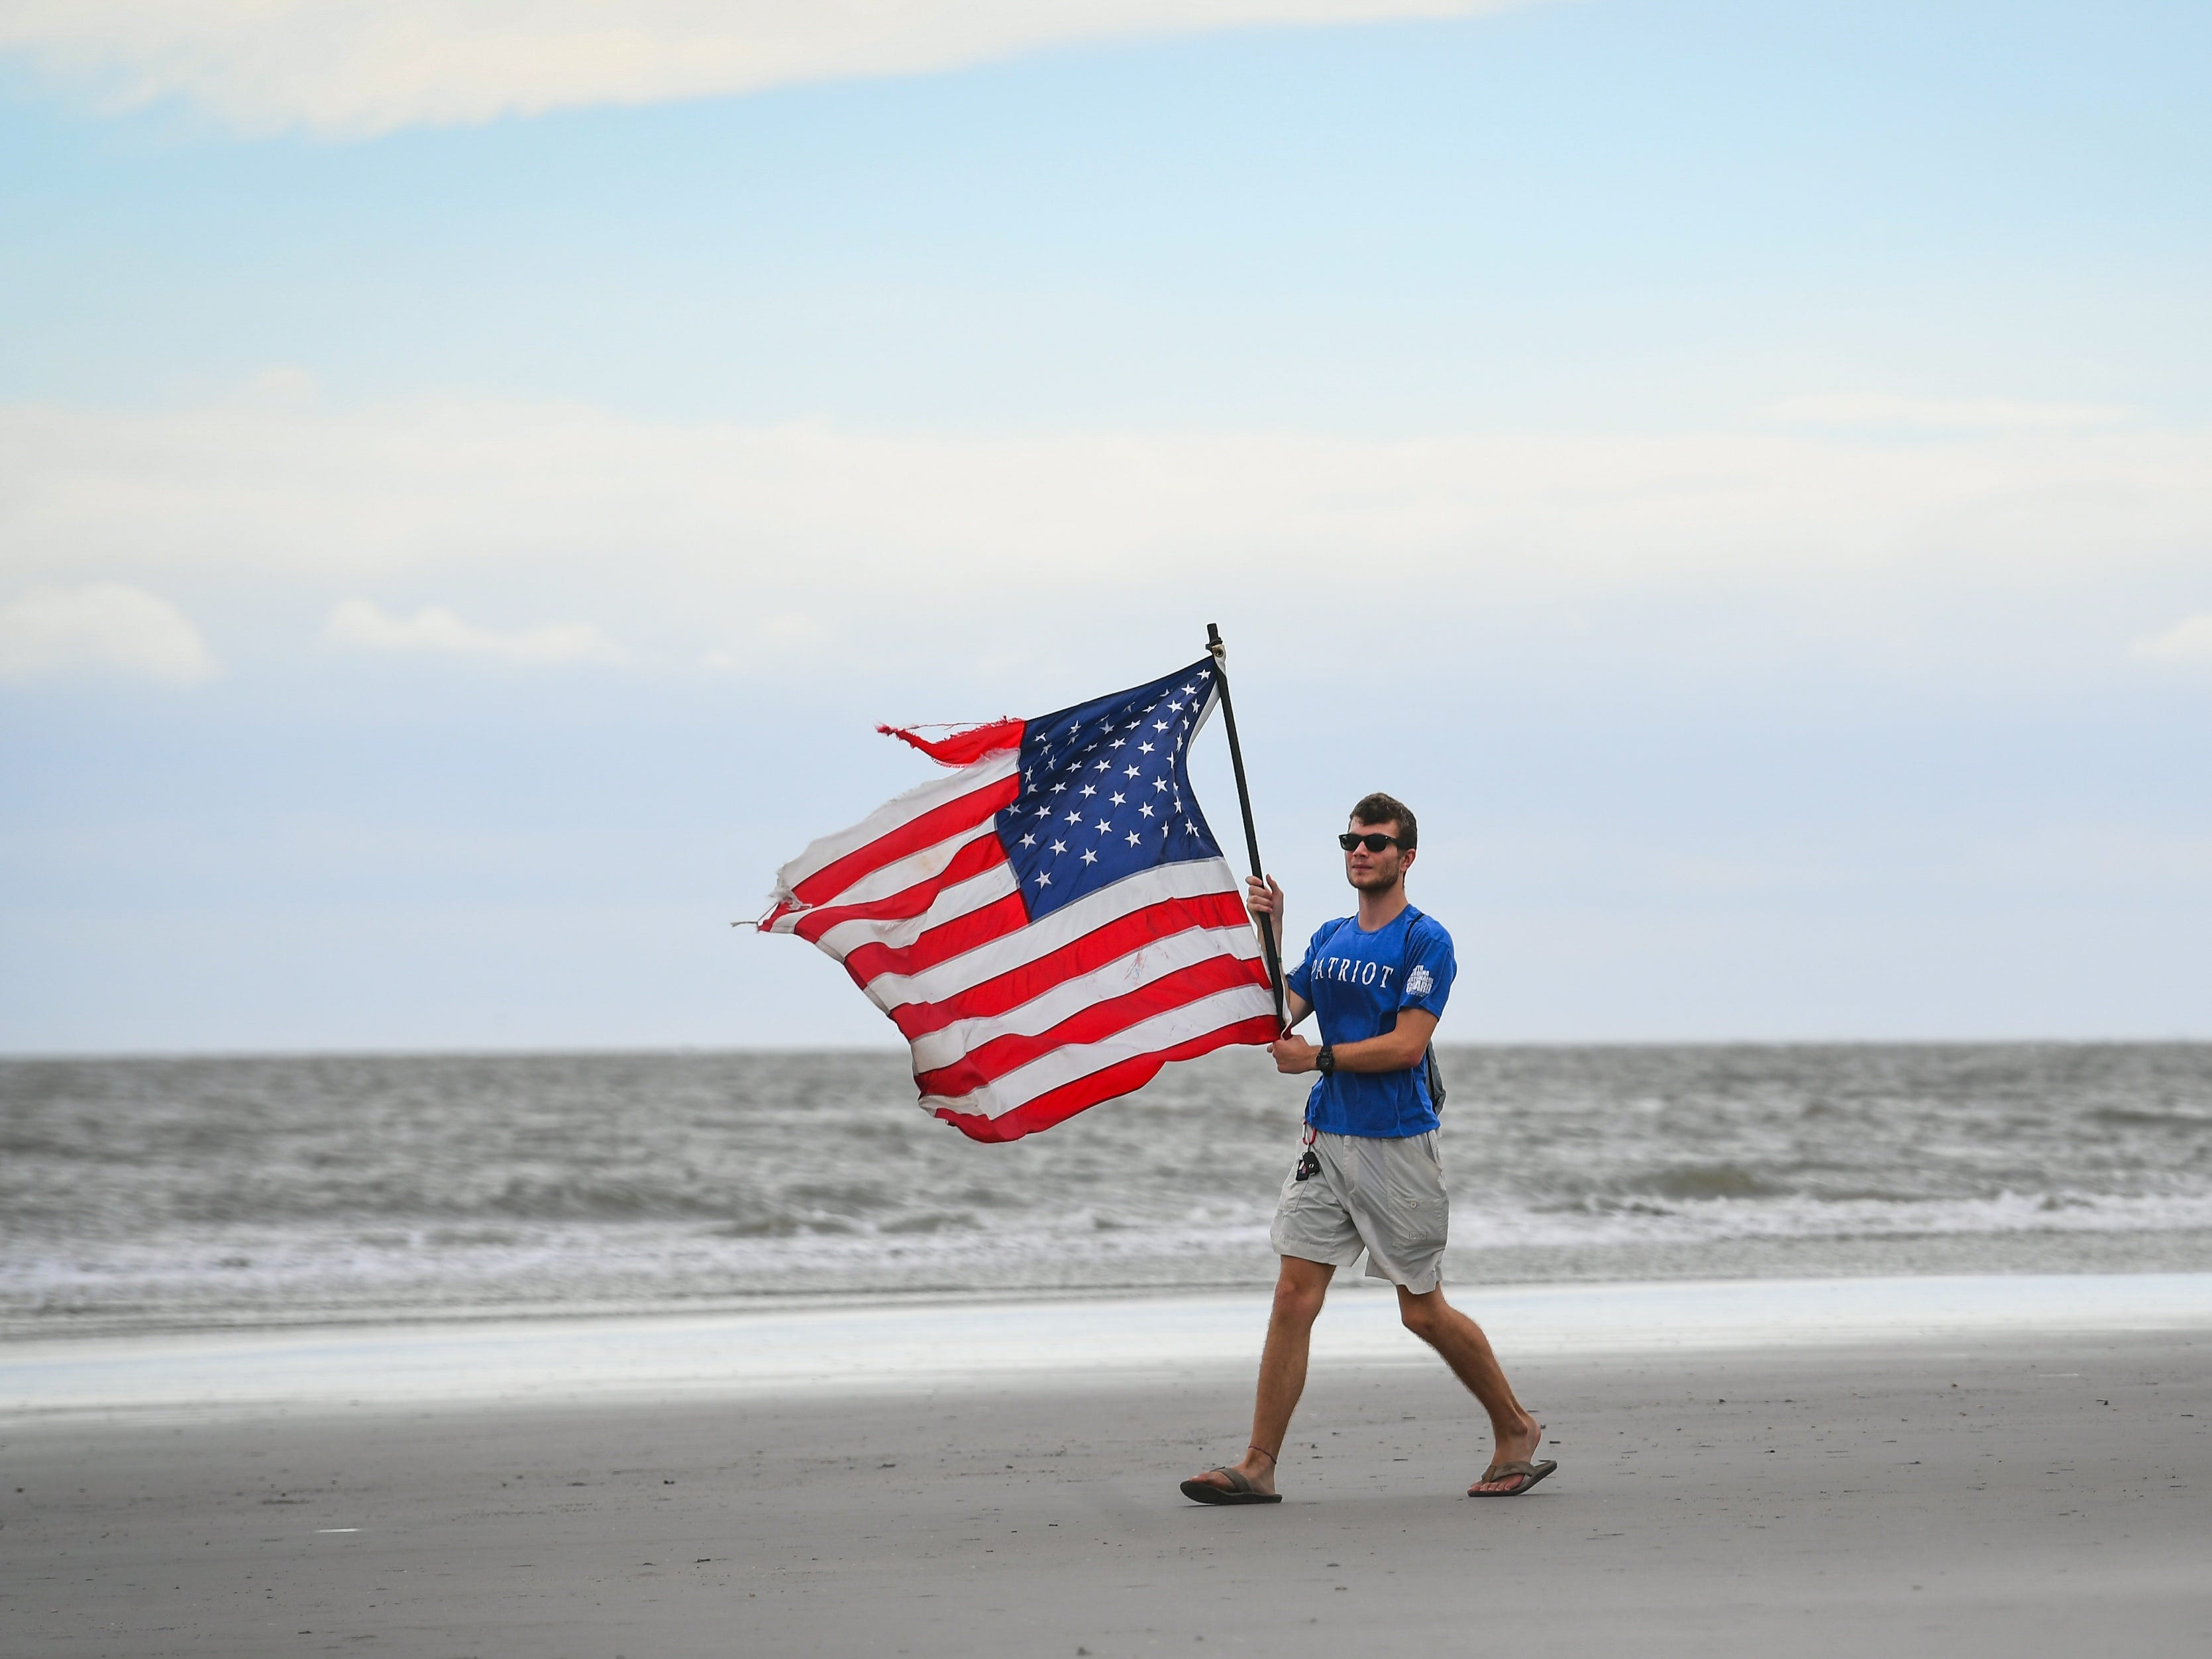 Sept. 14, 2018: Mason Moise, 18, from Charleston, S.C., carries a U.S. flag in the increasing winds on Isle of Palms, S.C. prior to the arrival of Hurricane Florence.